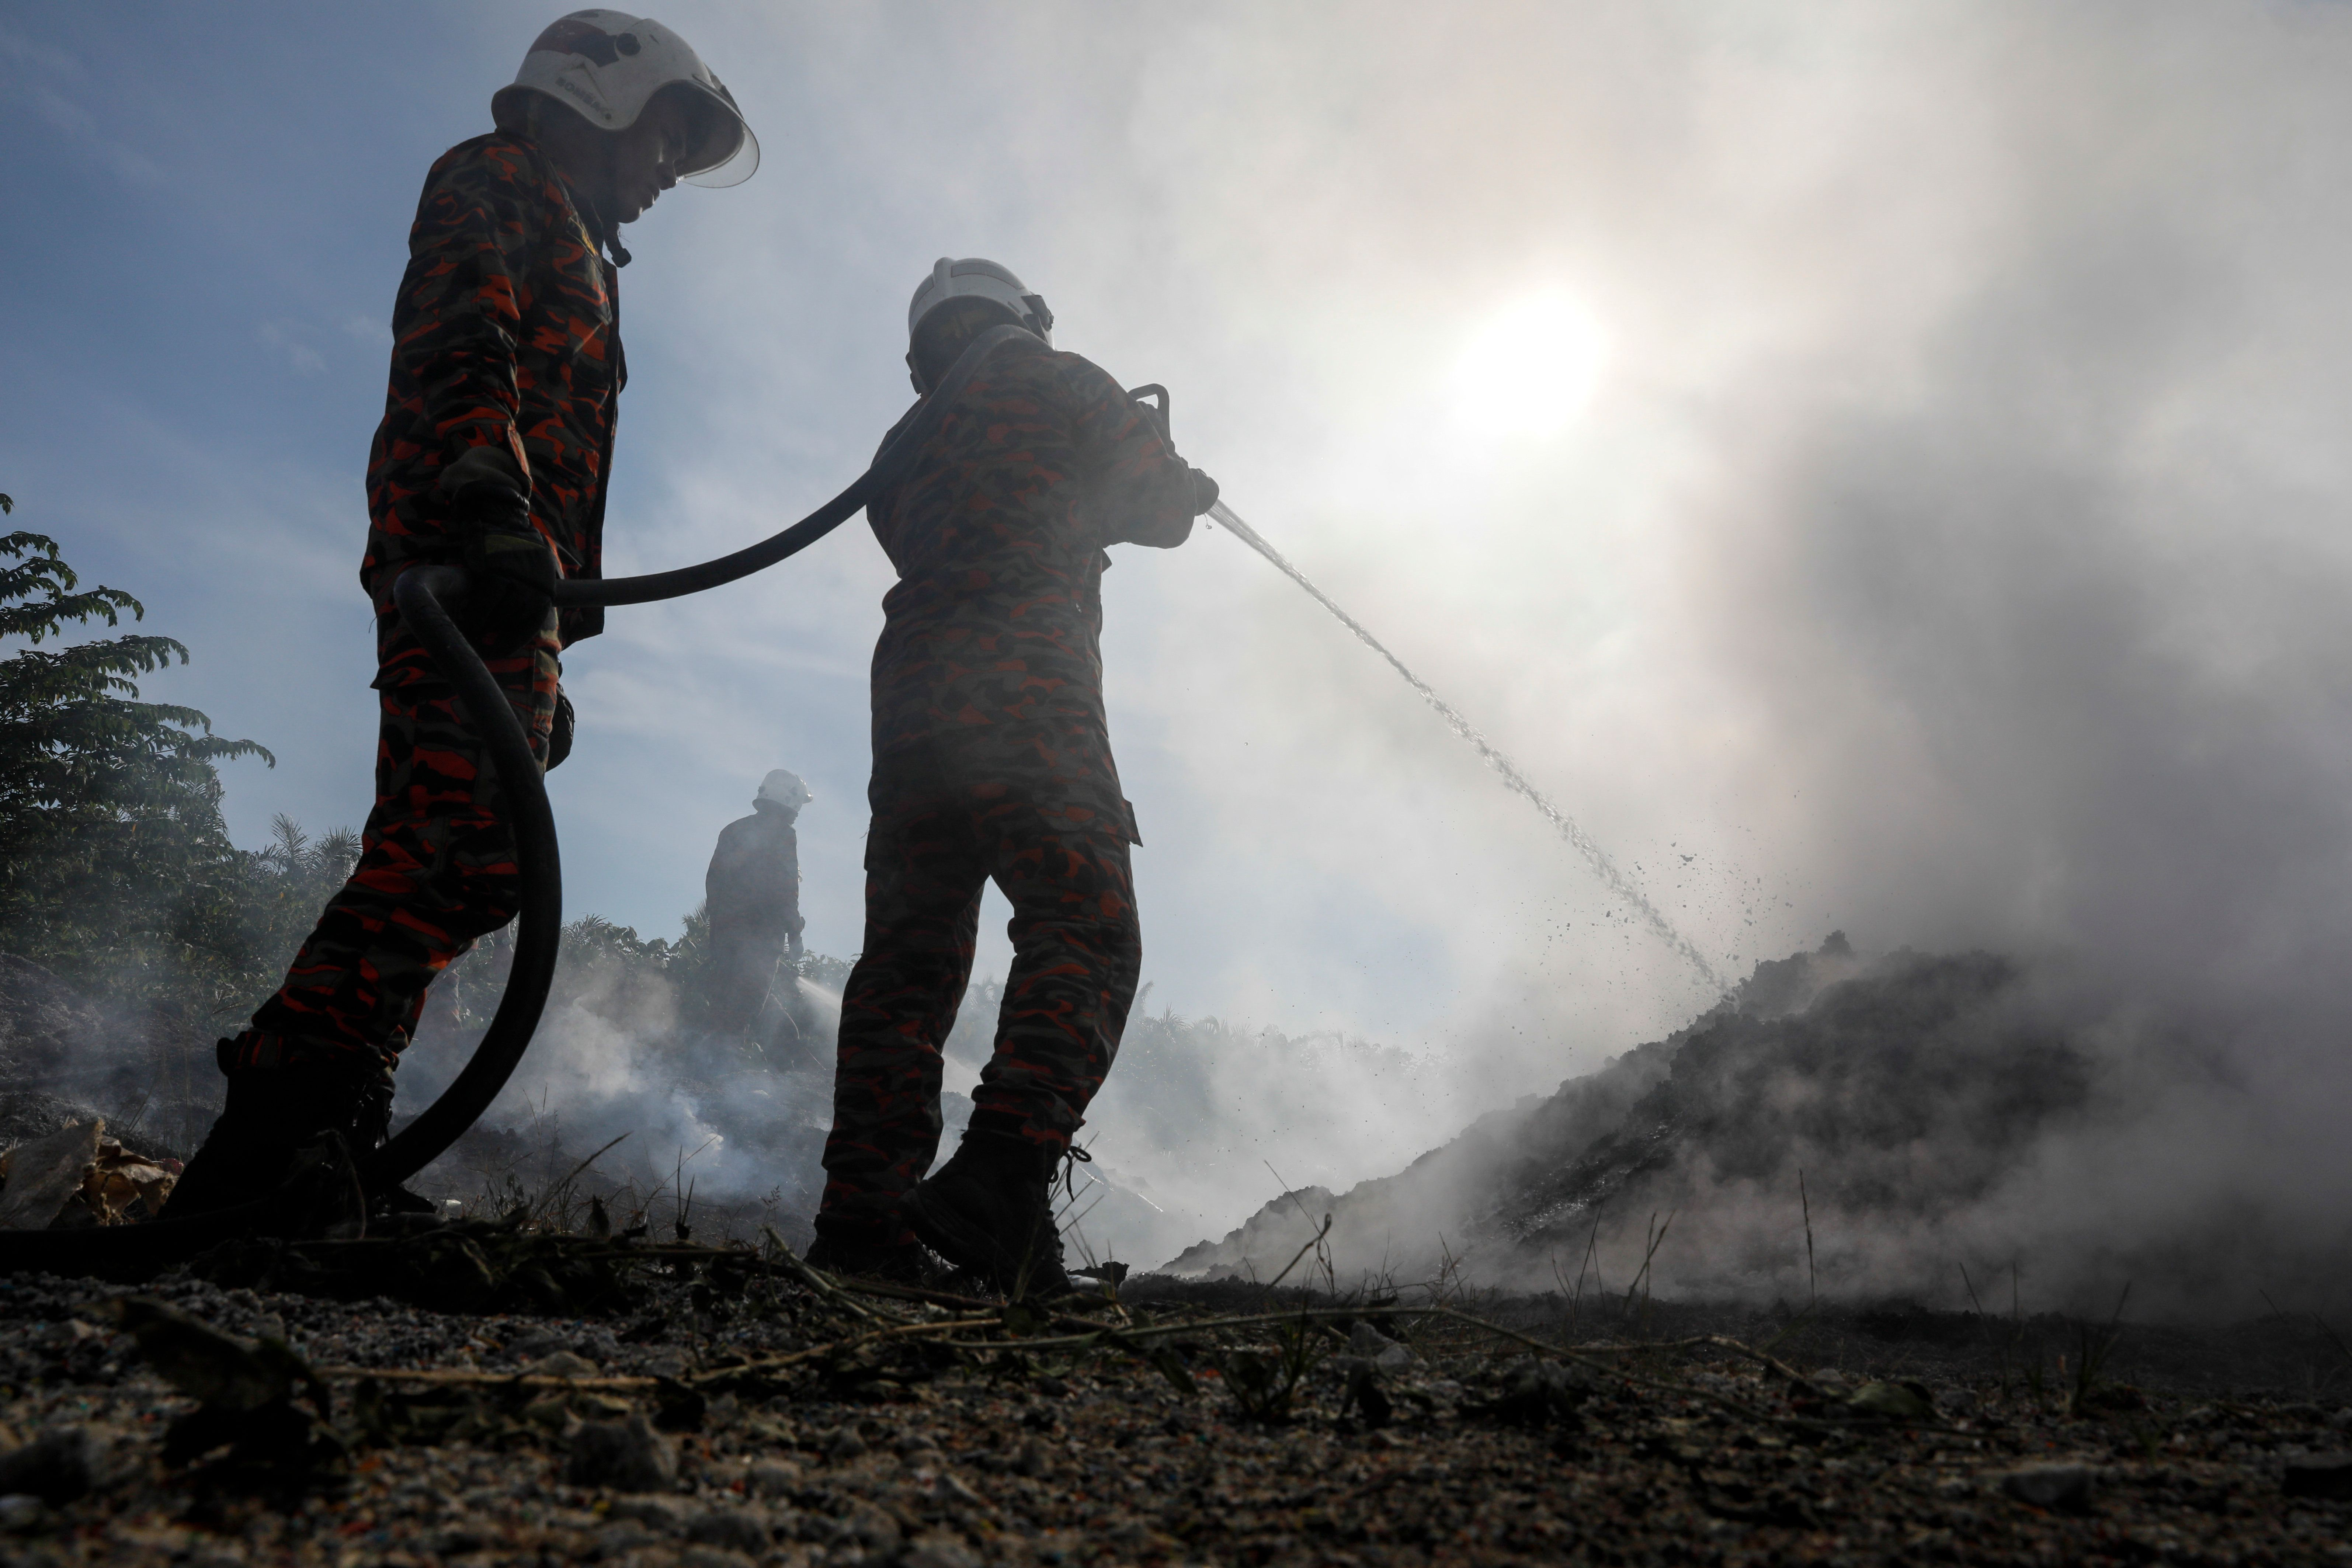 Firemen puts out the fire at an open burning site inside a palm oil estate in Kuala Langat, Selangor, Malaysia, Saturday, Feb. 2, 2019.